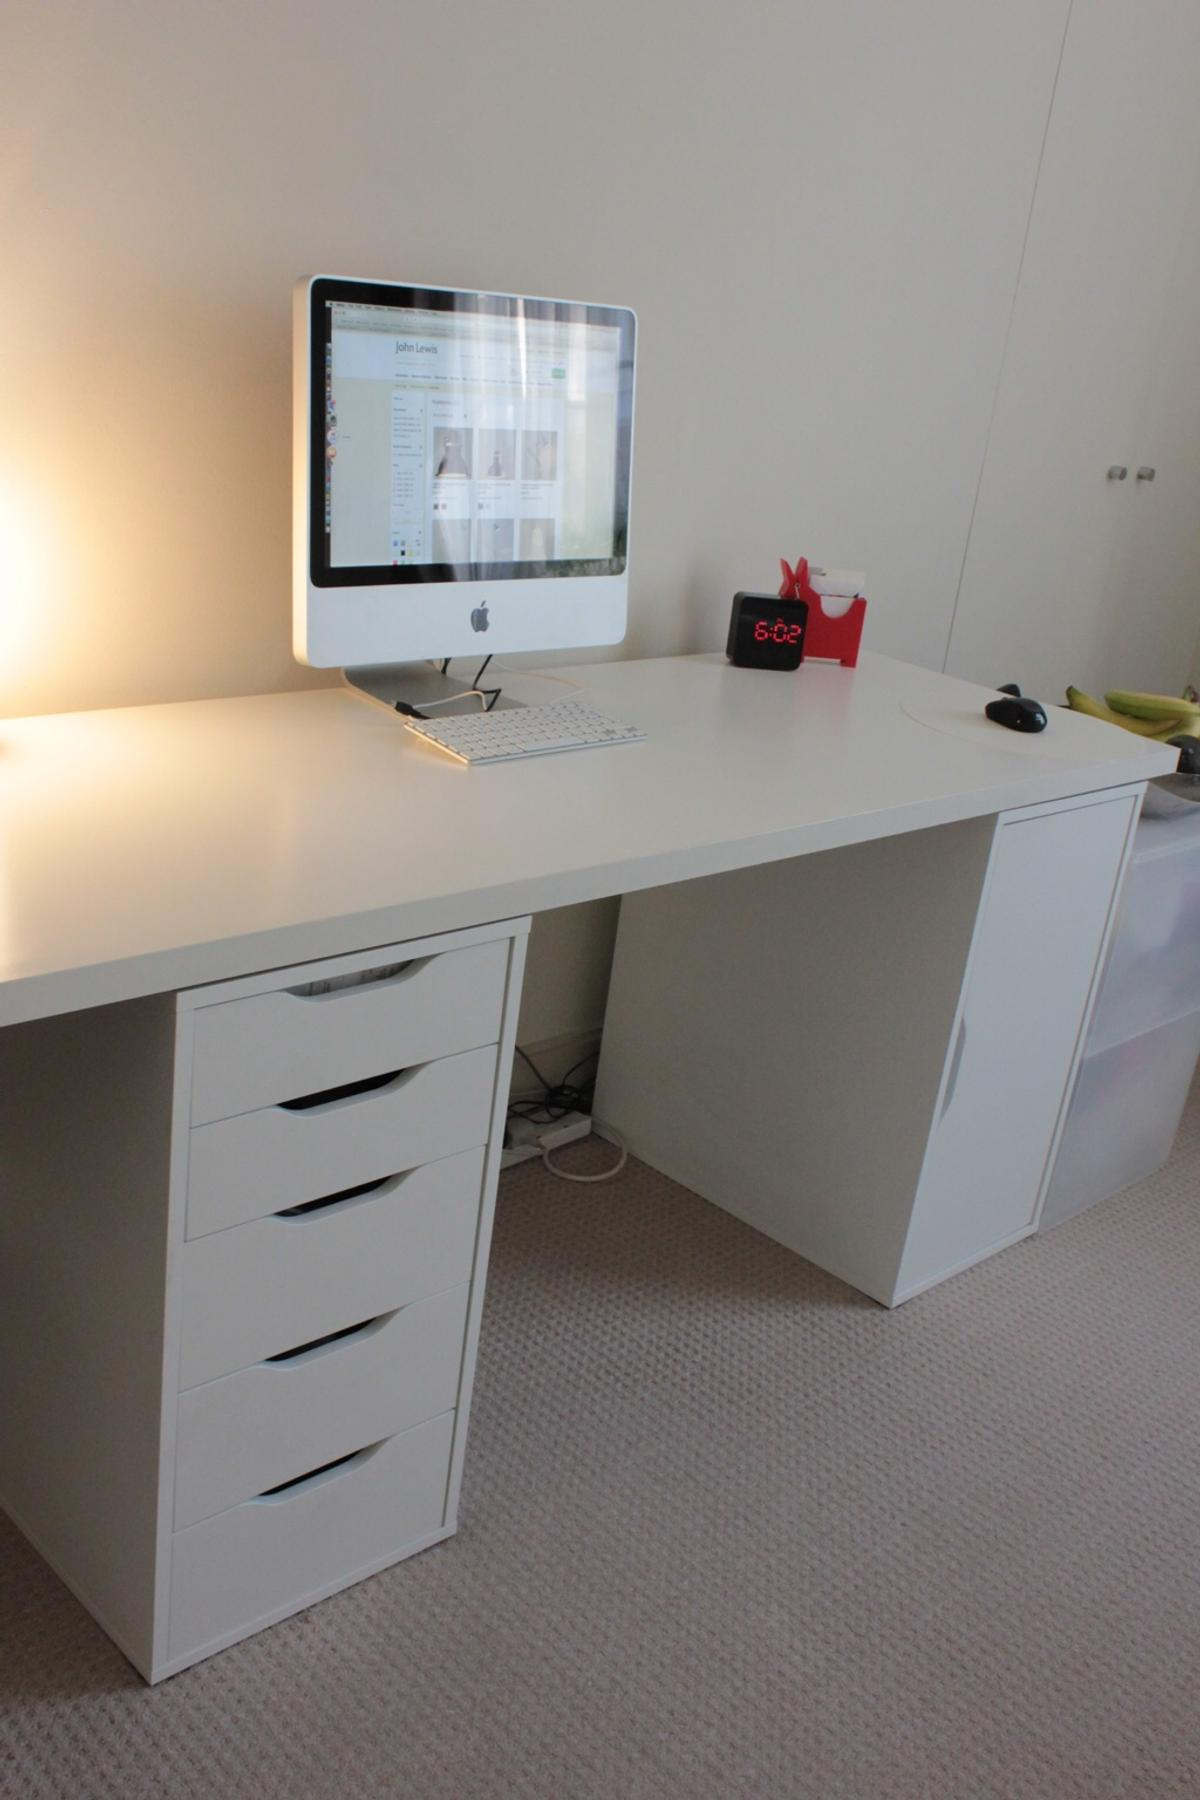 Ikea Linnmon Alex Table Top In W1g London For 8 00 For Sale Shpock